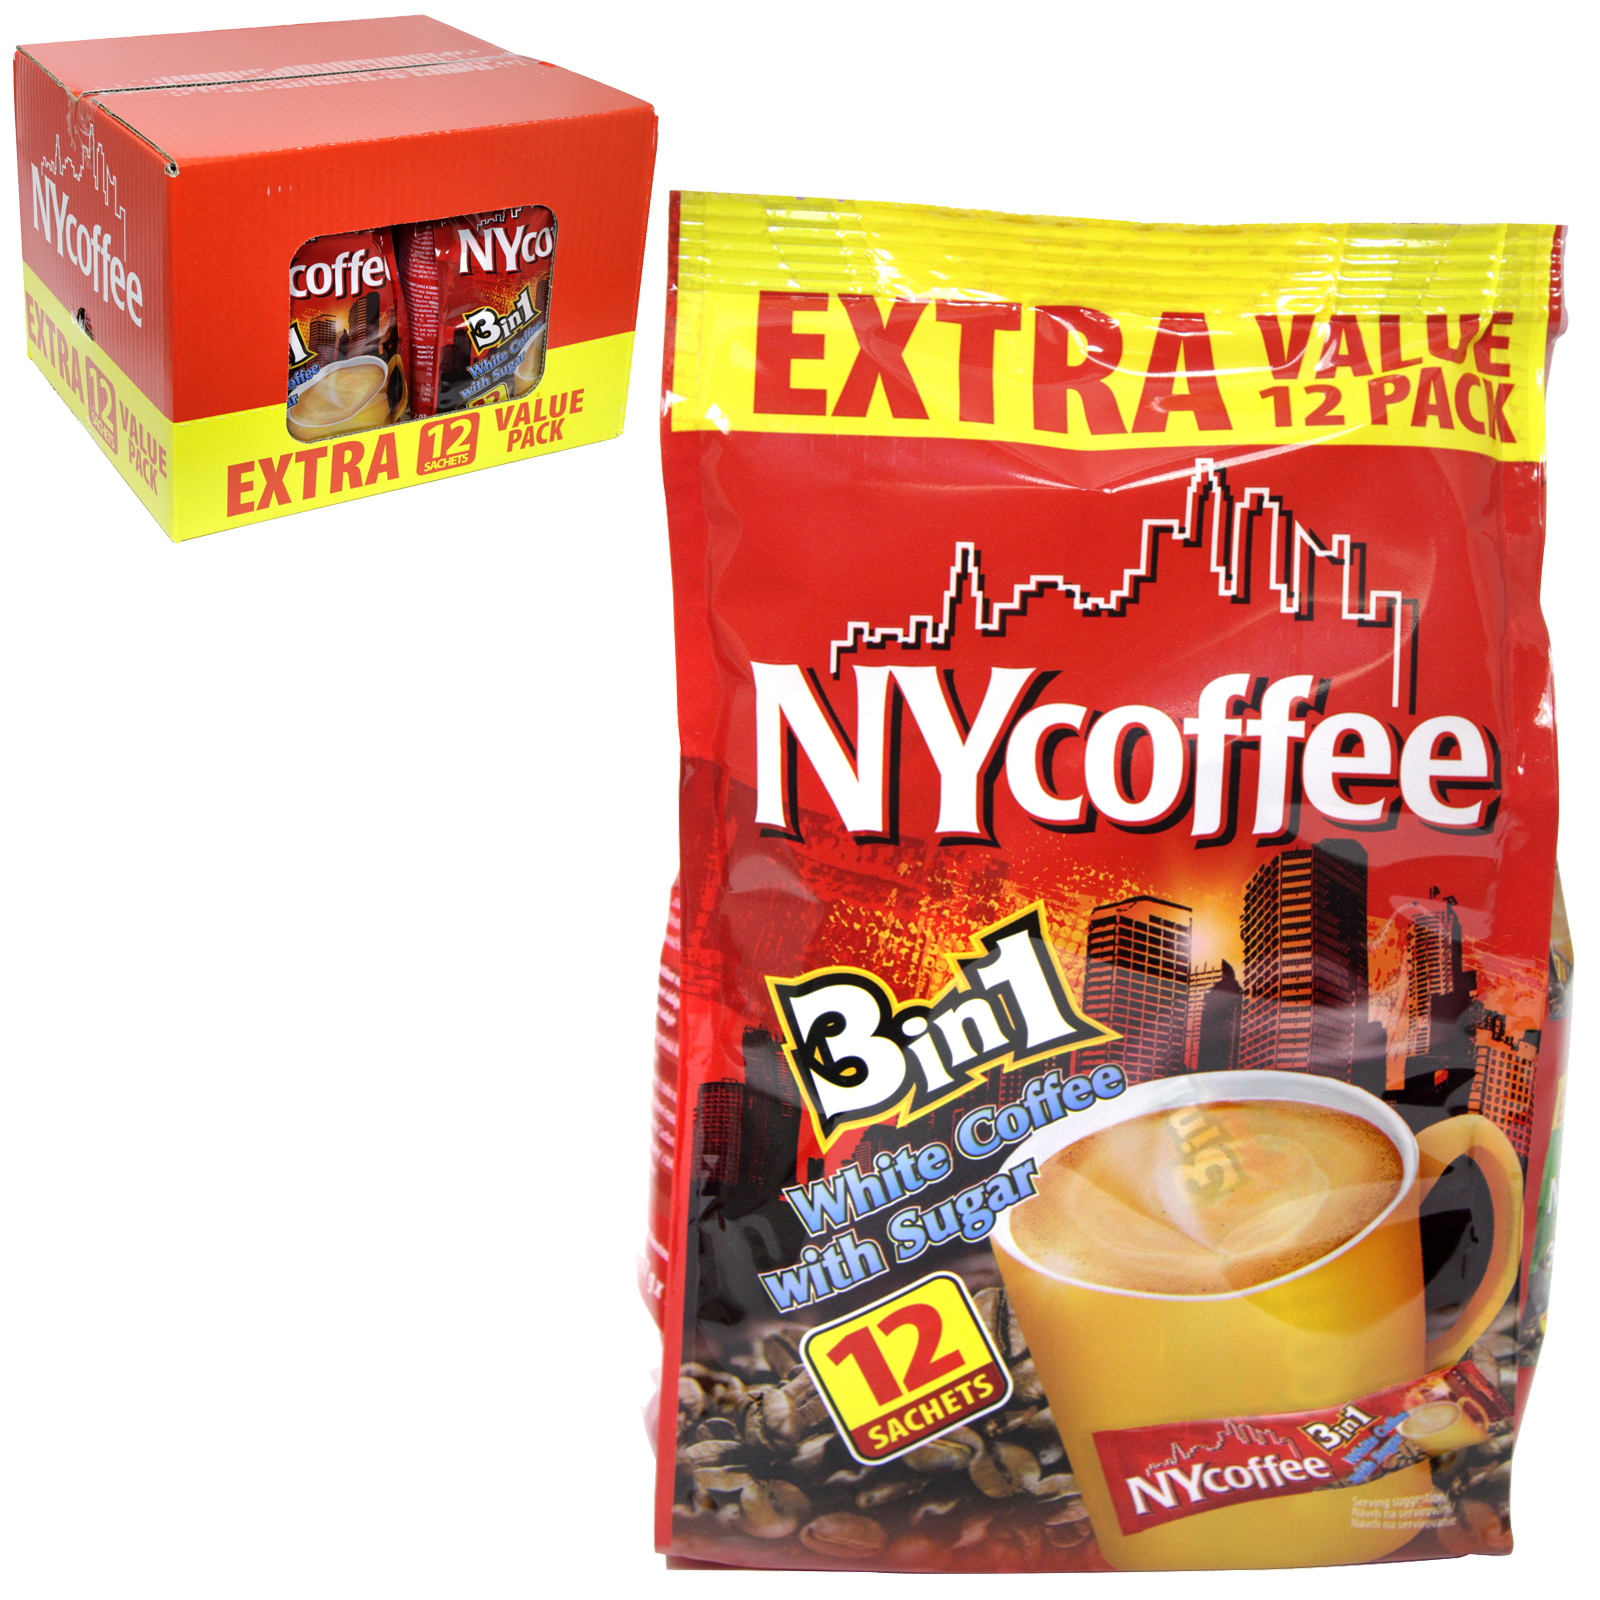 NY COFFEE 3IN1 12 SACHET PACK X10